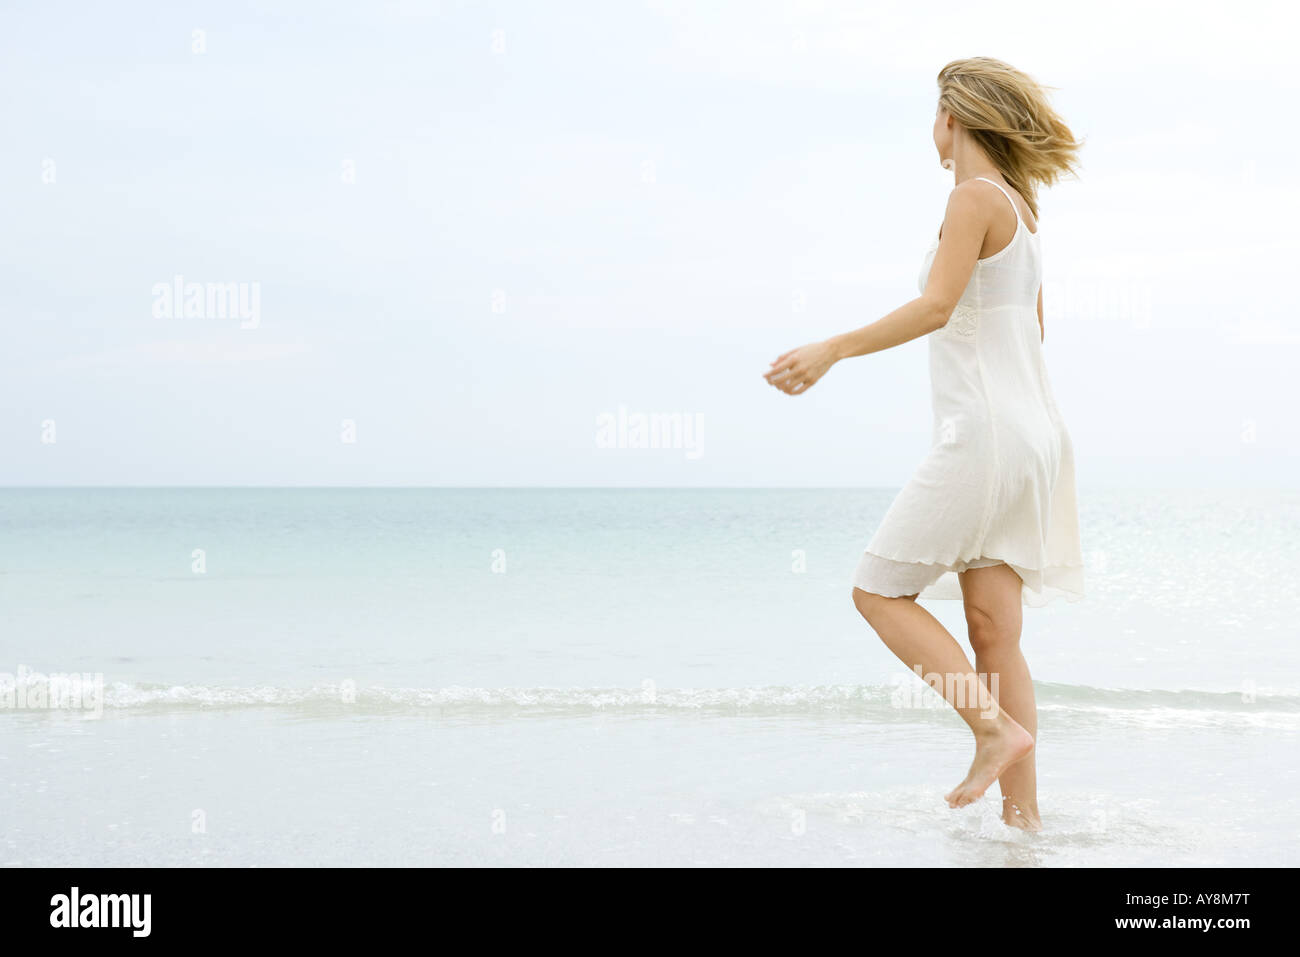 Young woman in sundress walking in shallow water at beach, looking toward horizon - Stock Image